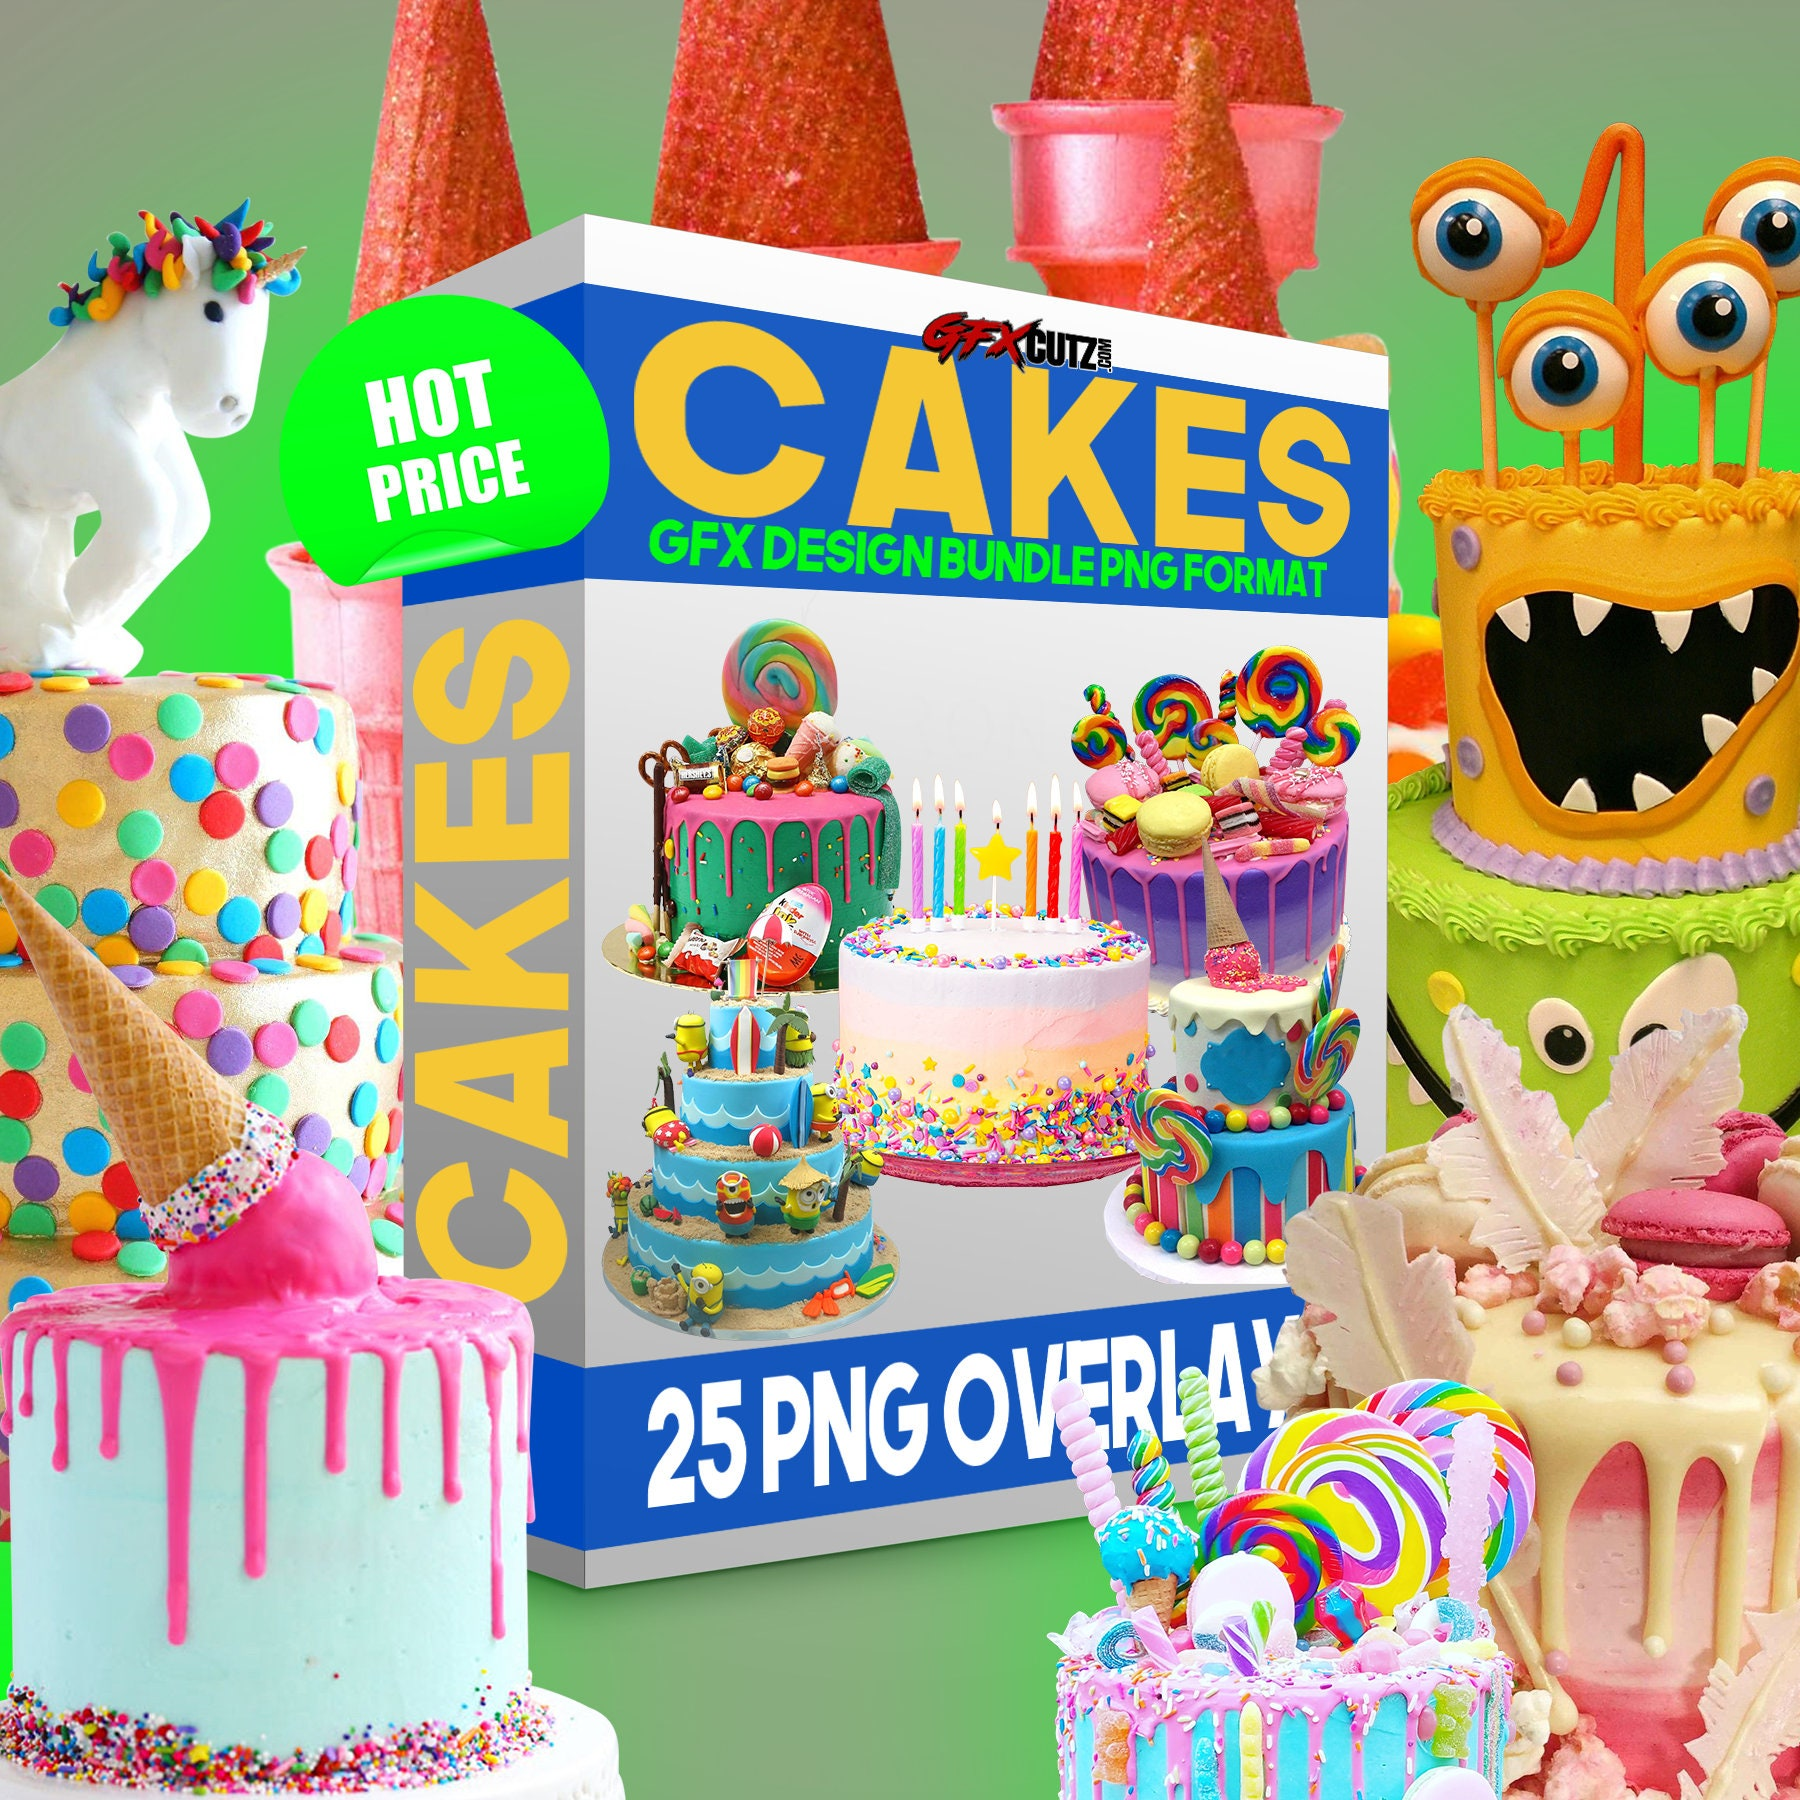 Cakes Photoshop Overlay Png Images Photography Prop Overlays Digital Download Clip Art Clipart Color Birthday Isolated